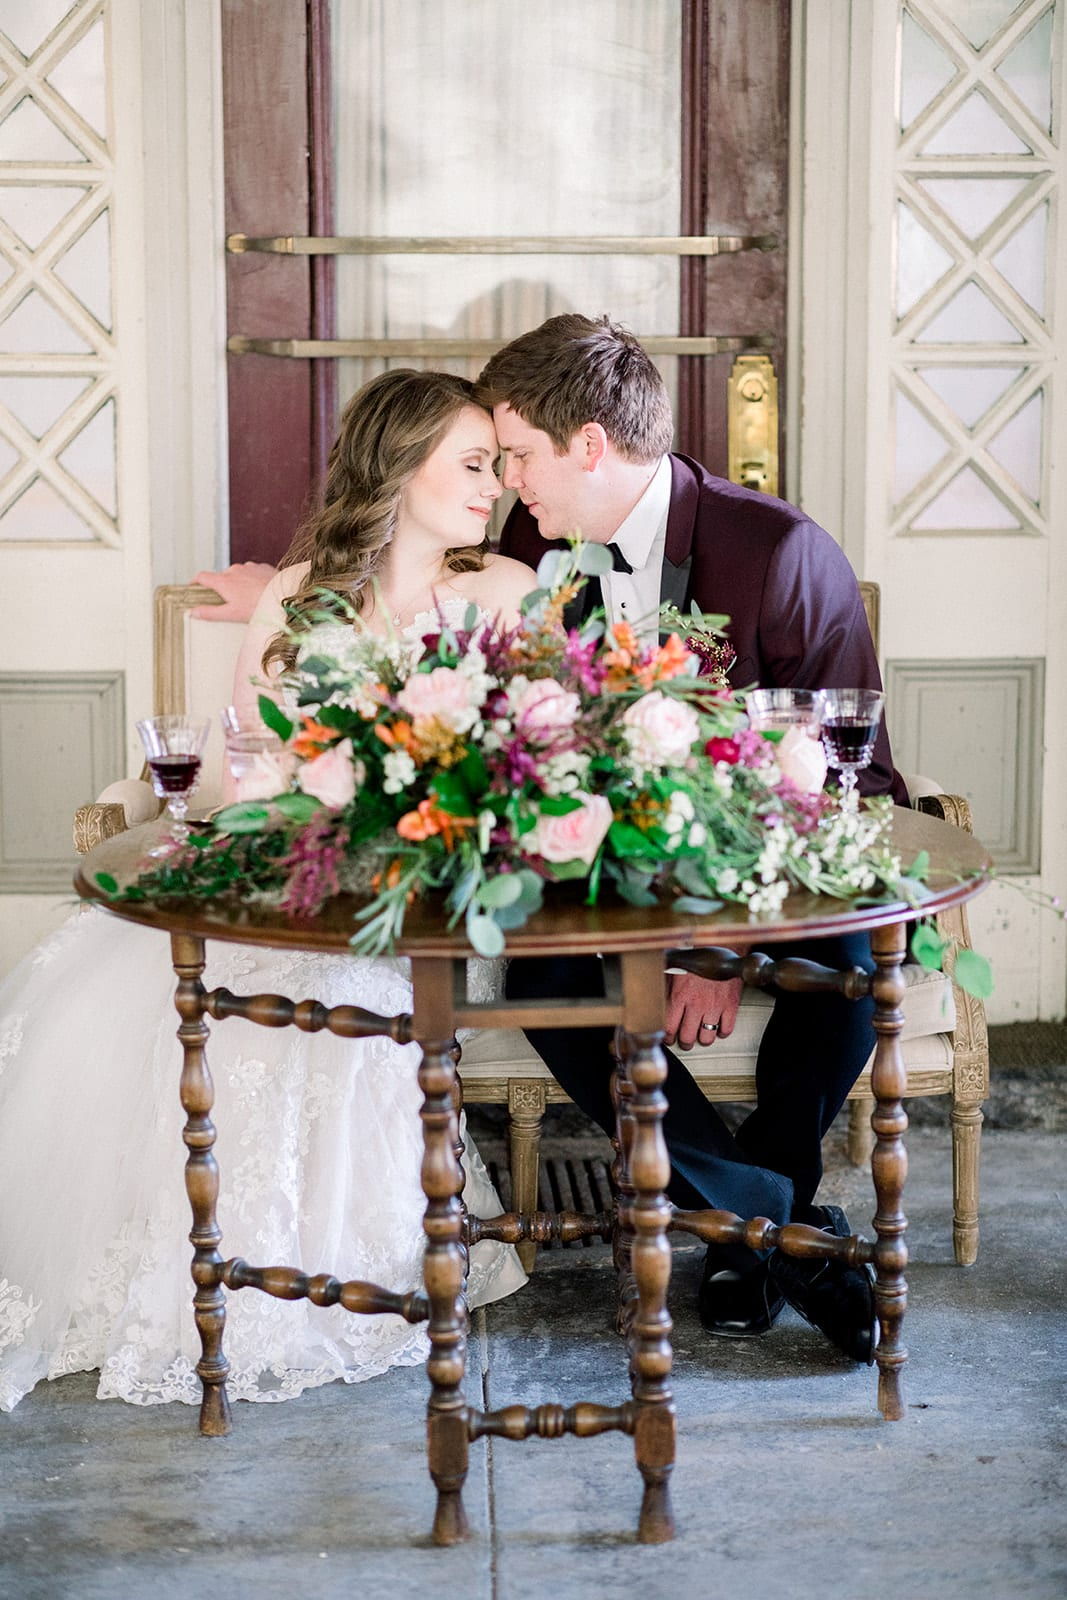 Wedding Couple at a sweetheart table. Table is a vintage gate leg table in an oval shape.